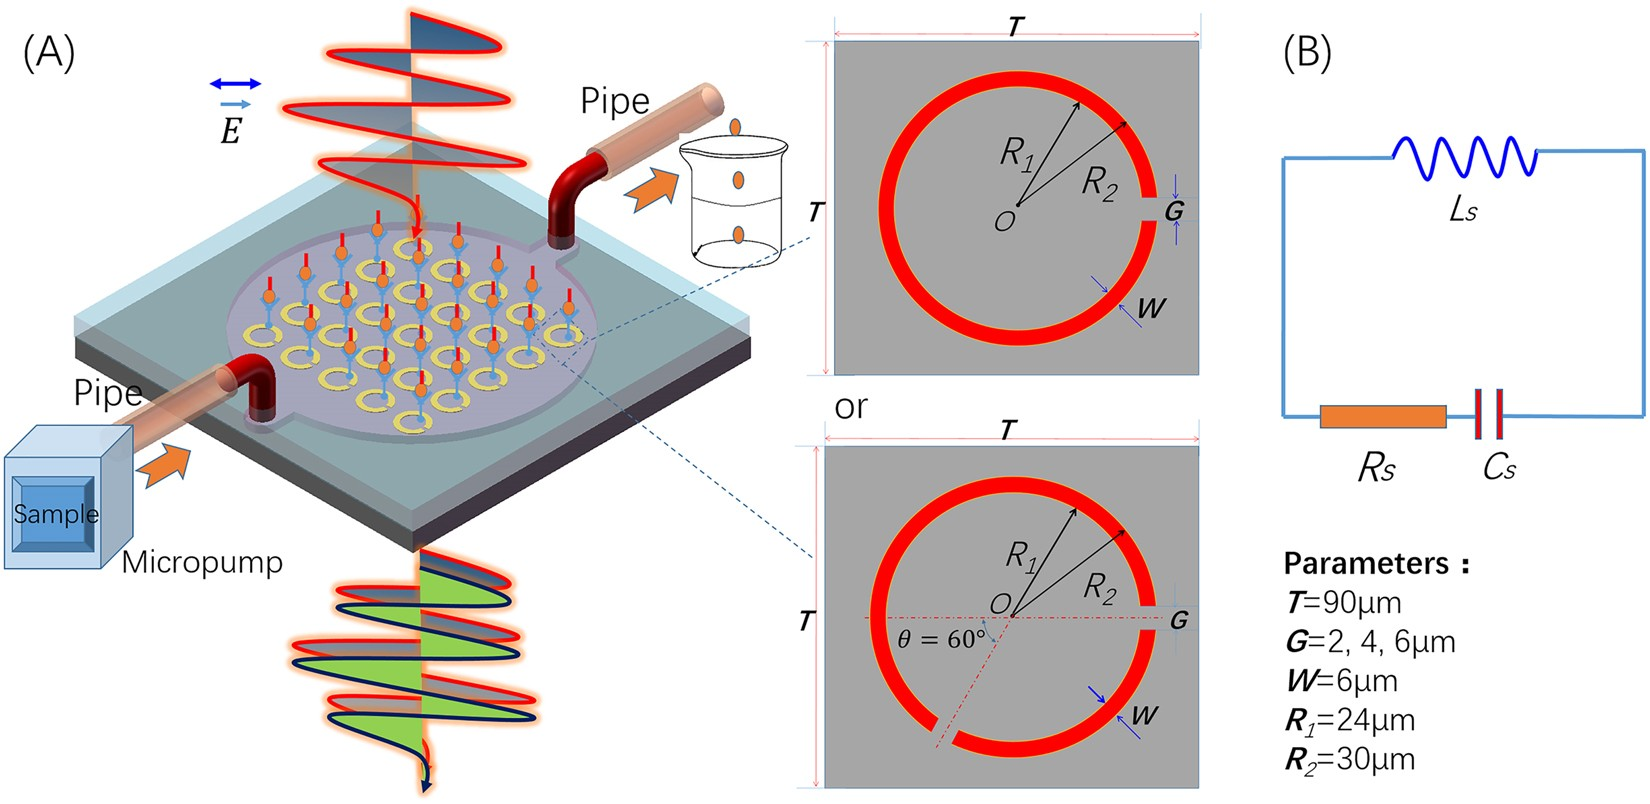 A Route To Terahertz Metamaterial Biosensor Integrated With Optical Liquid Sensor Circuit Proximity Detect Human Microfluidics For Liver Cancer Biomarker Testing In Early Stage Scientific Reports